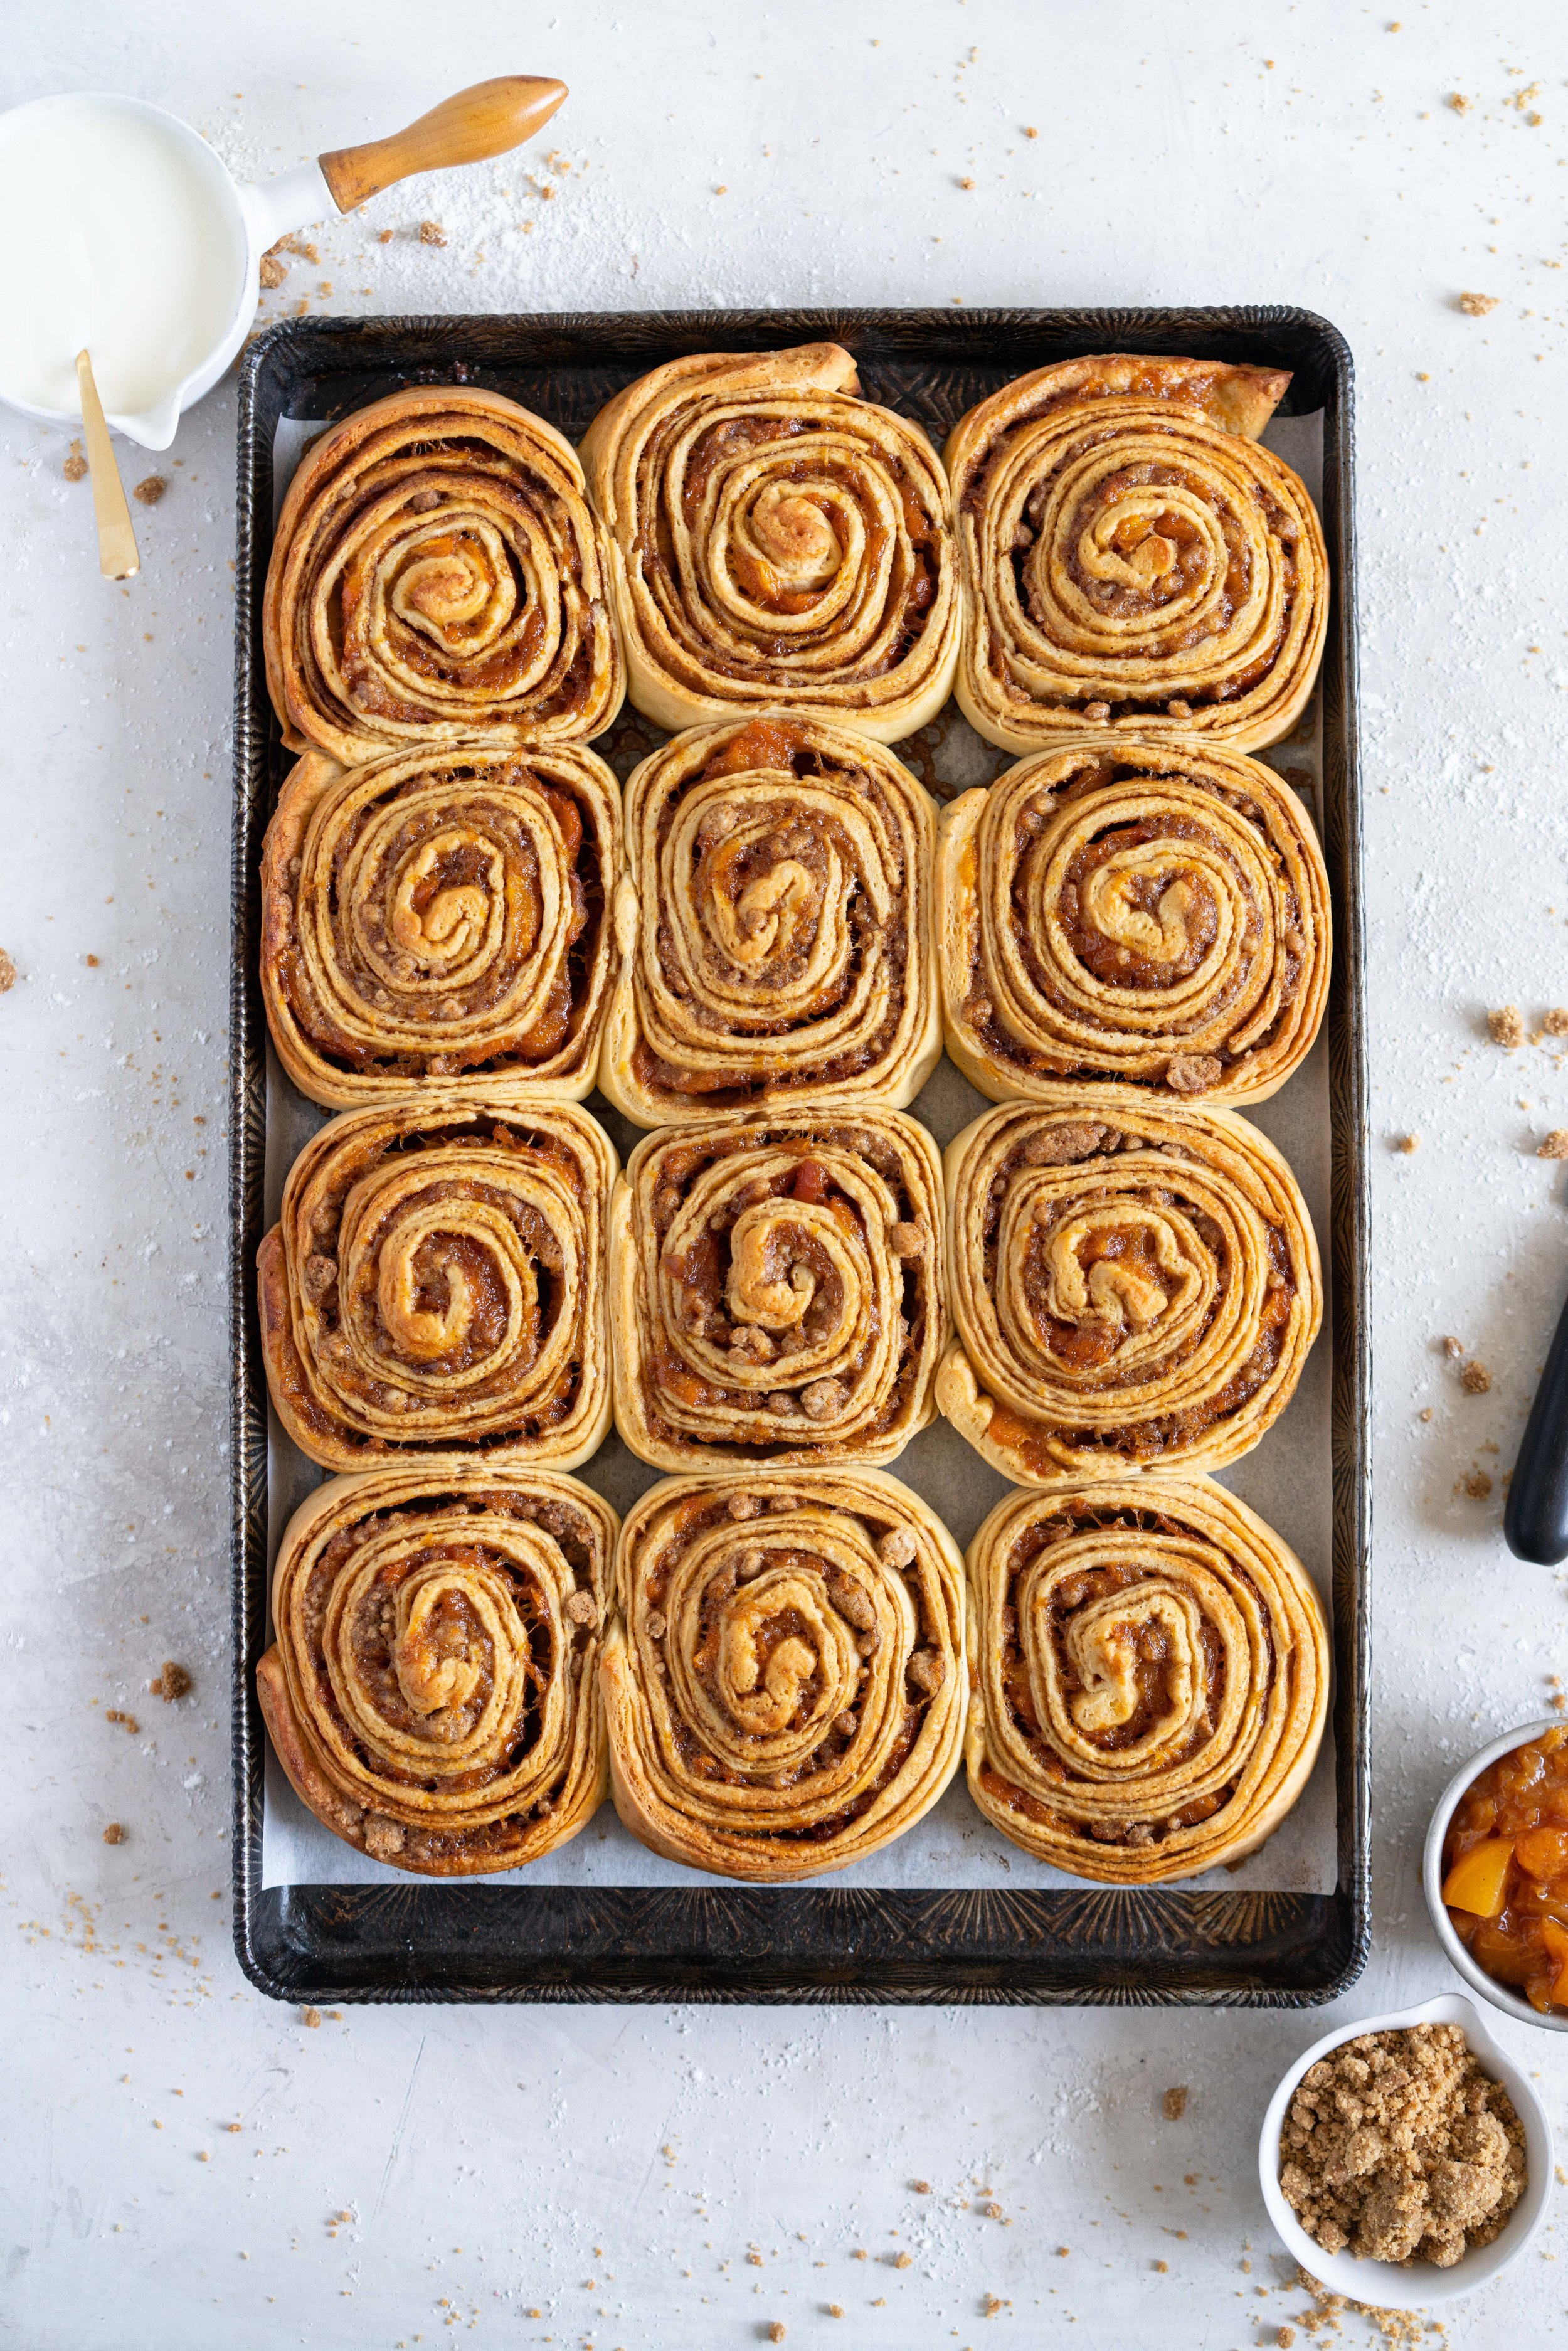 Laminated brioche cinnamon buns with peach compote and brown butter streusel. Soft and fluffy brioche is layered with cinnamon sugar, then filled with a brown butter streusel and peach compote, and finished with a powdered sugar glaze. These are the perfect summer treat. #briochebuns #cinnamonbuns #laminatedbriochebuns #peachcompote